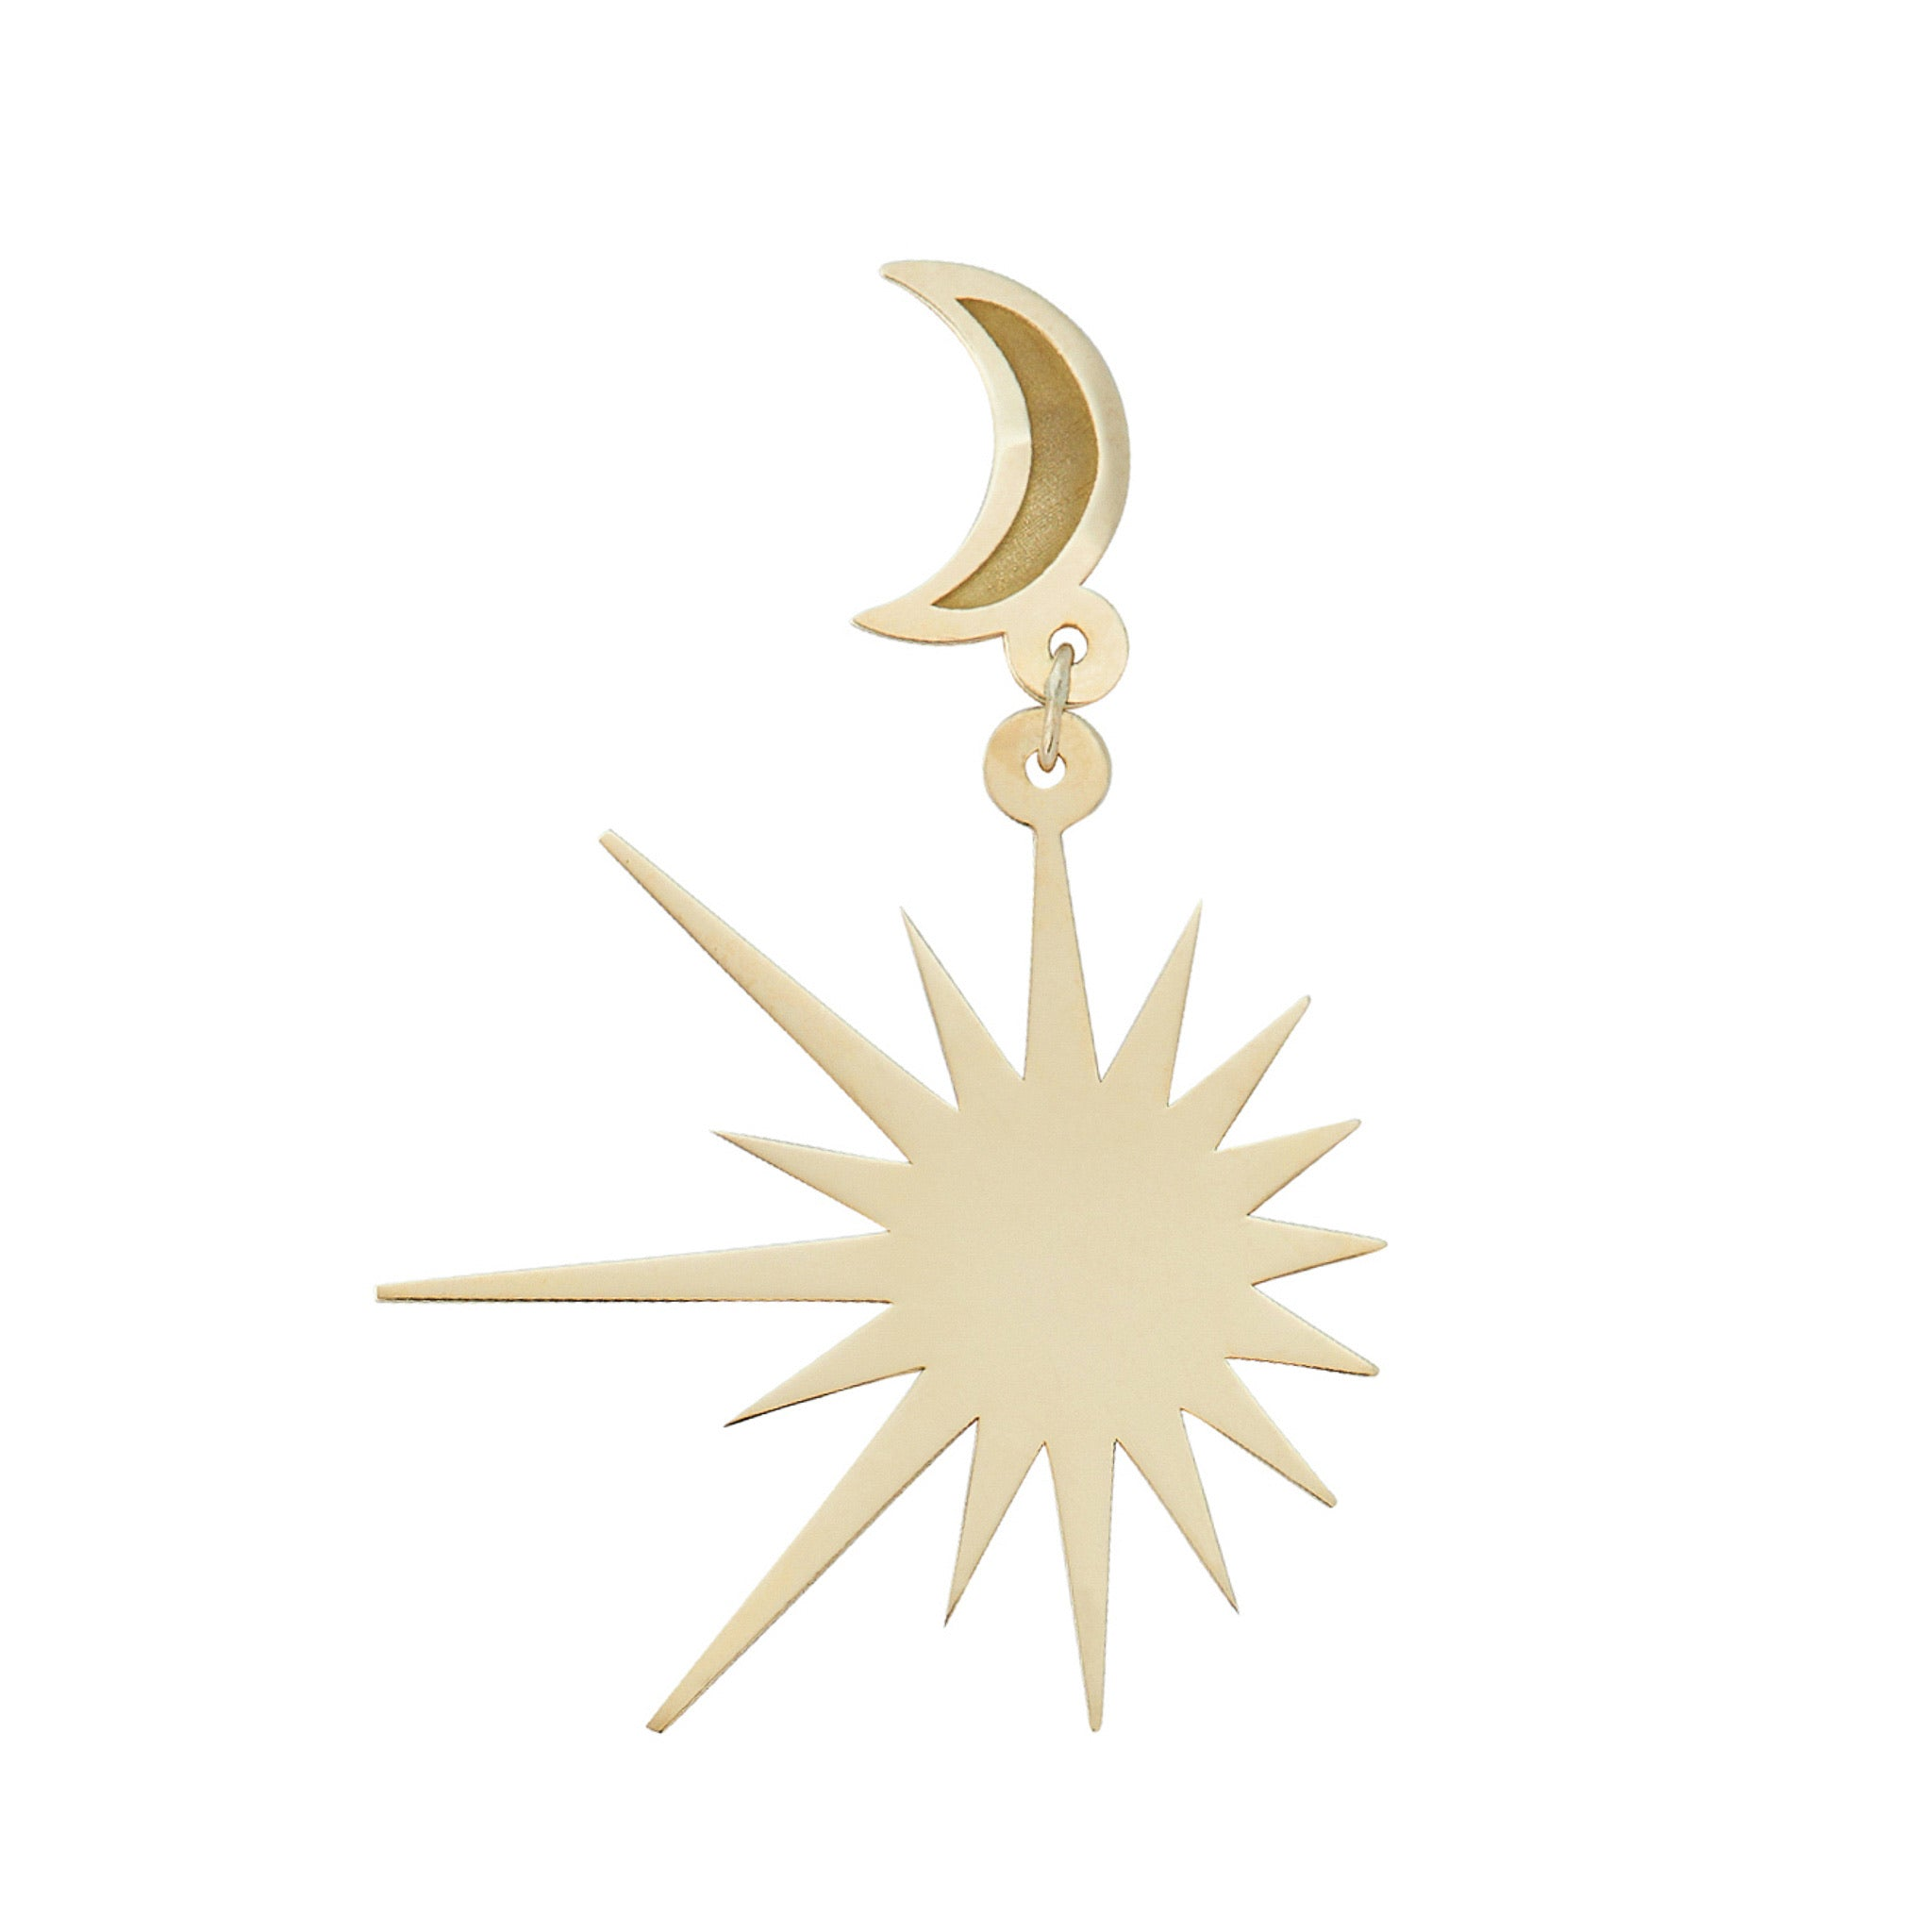 The Sun Singlet earring